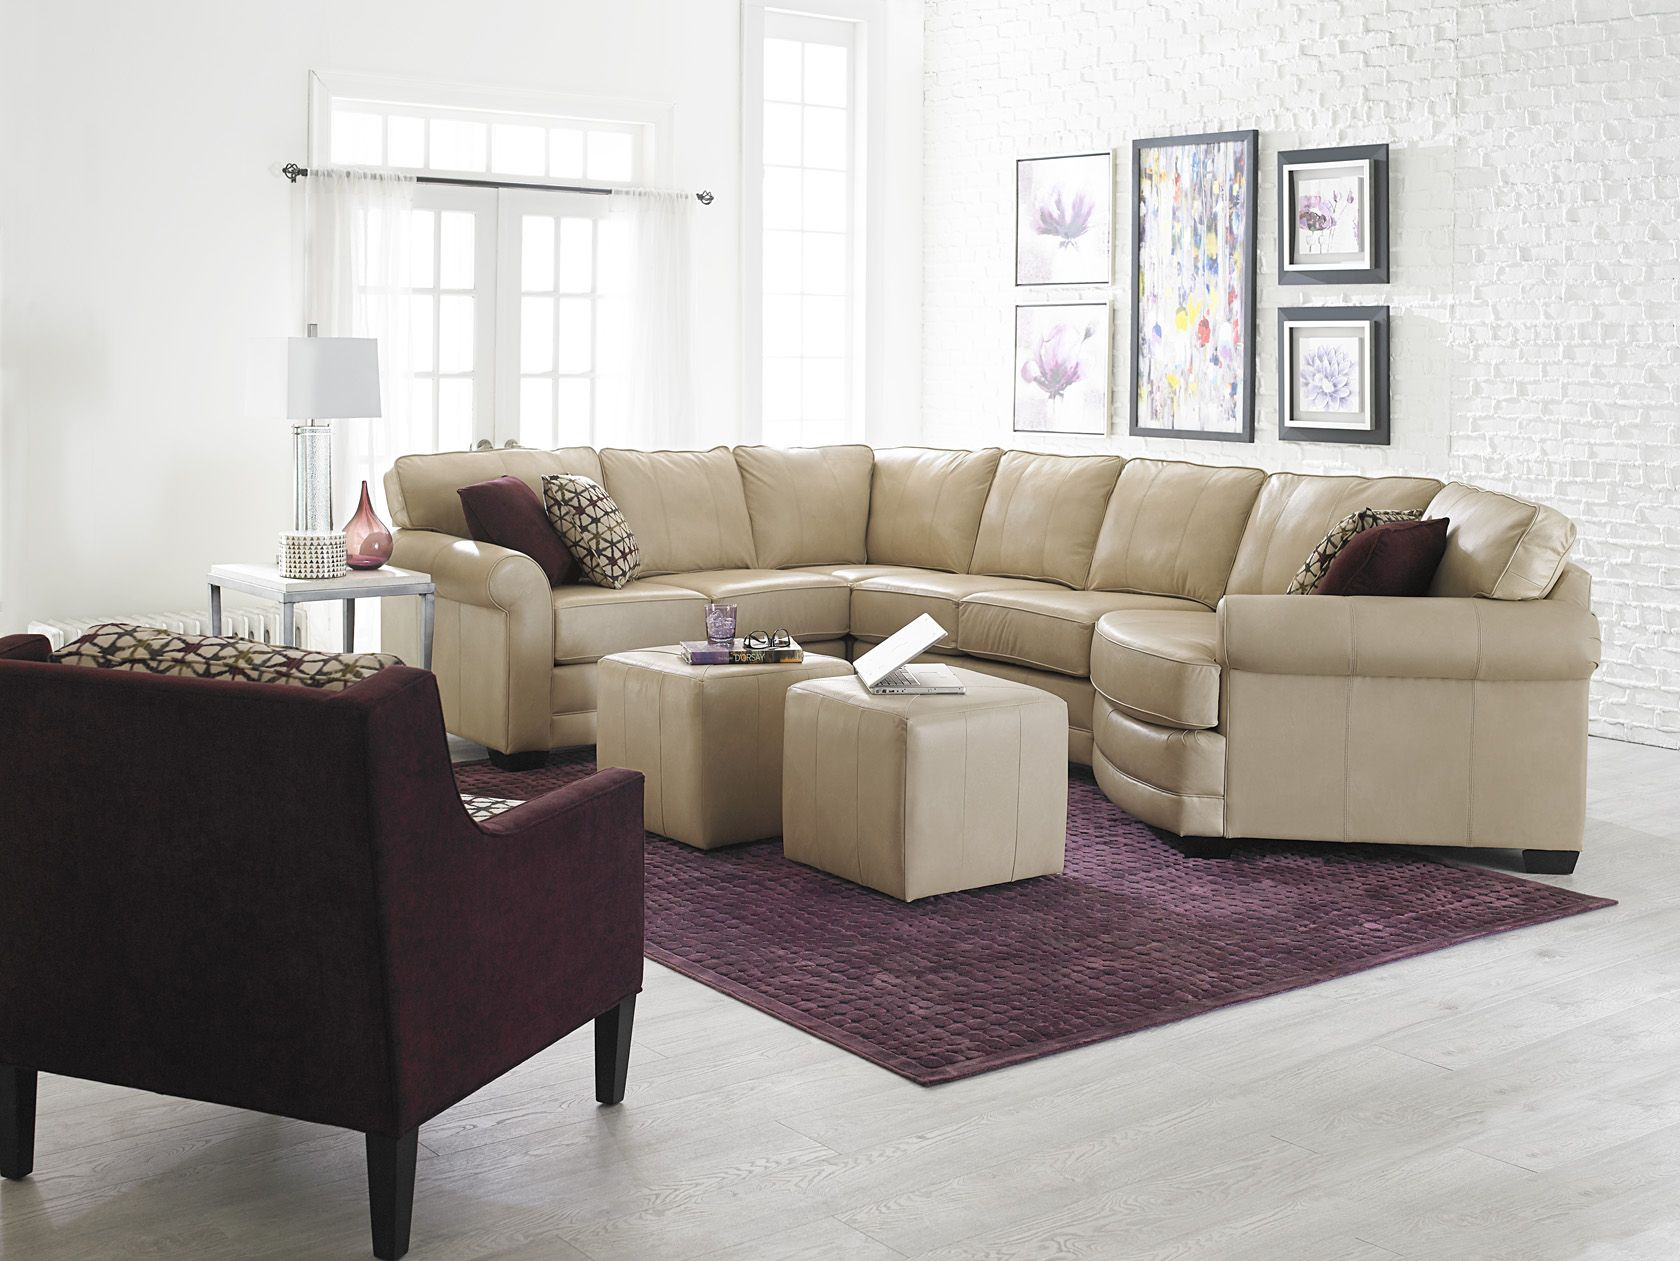 abbie right chaise sectional sofa with large cushions by england indian wooden images furniture living room